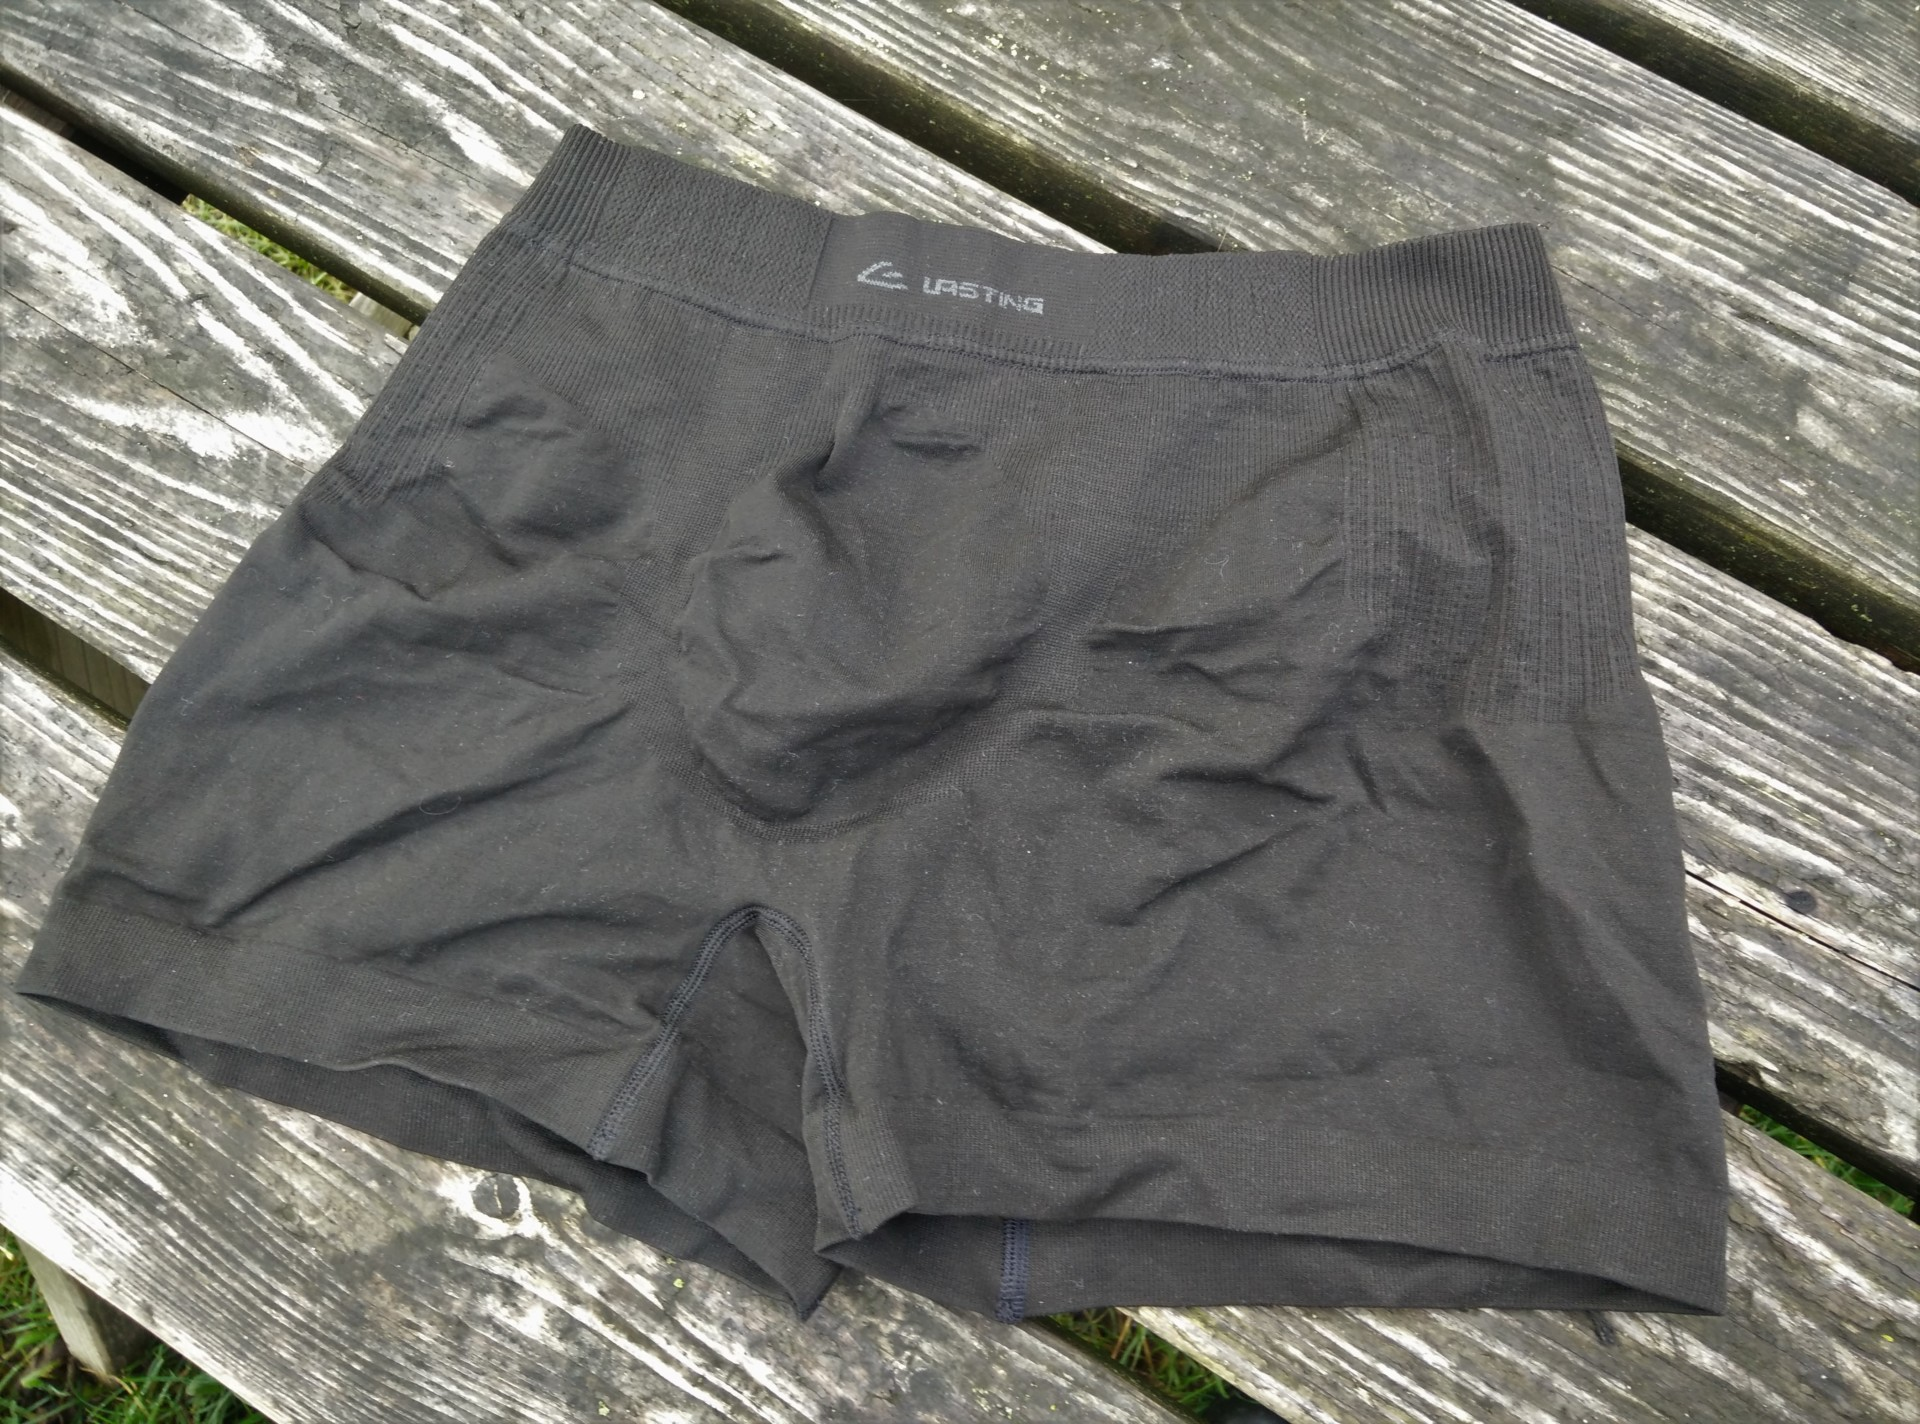 Lasting Adam Men's Polypro Boxers Review